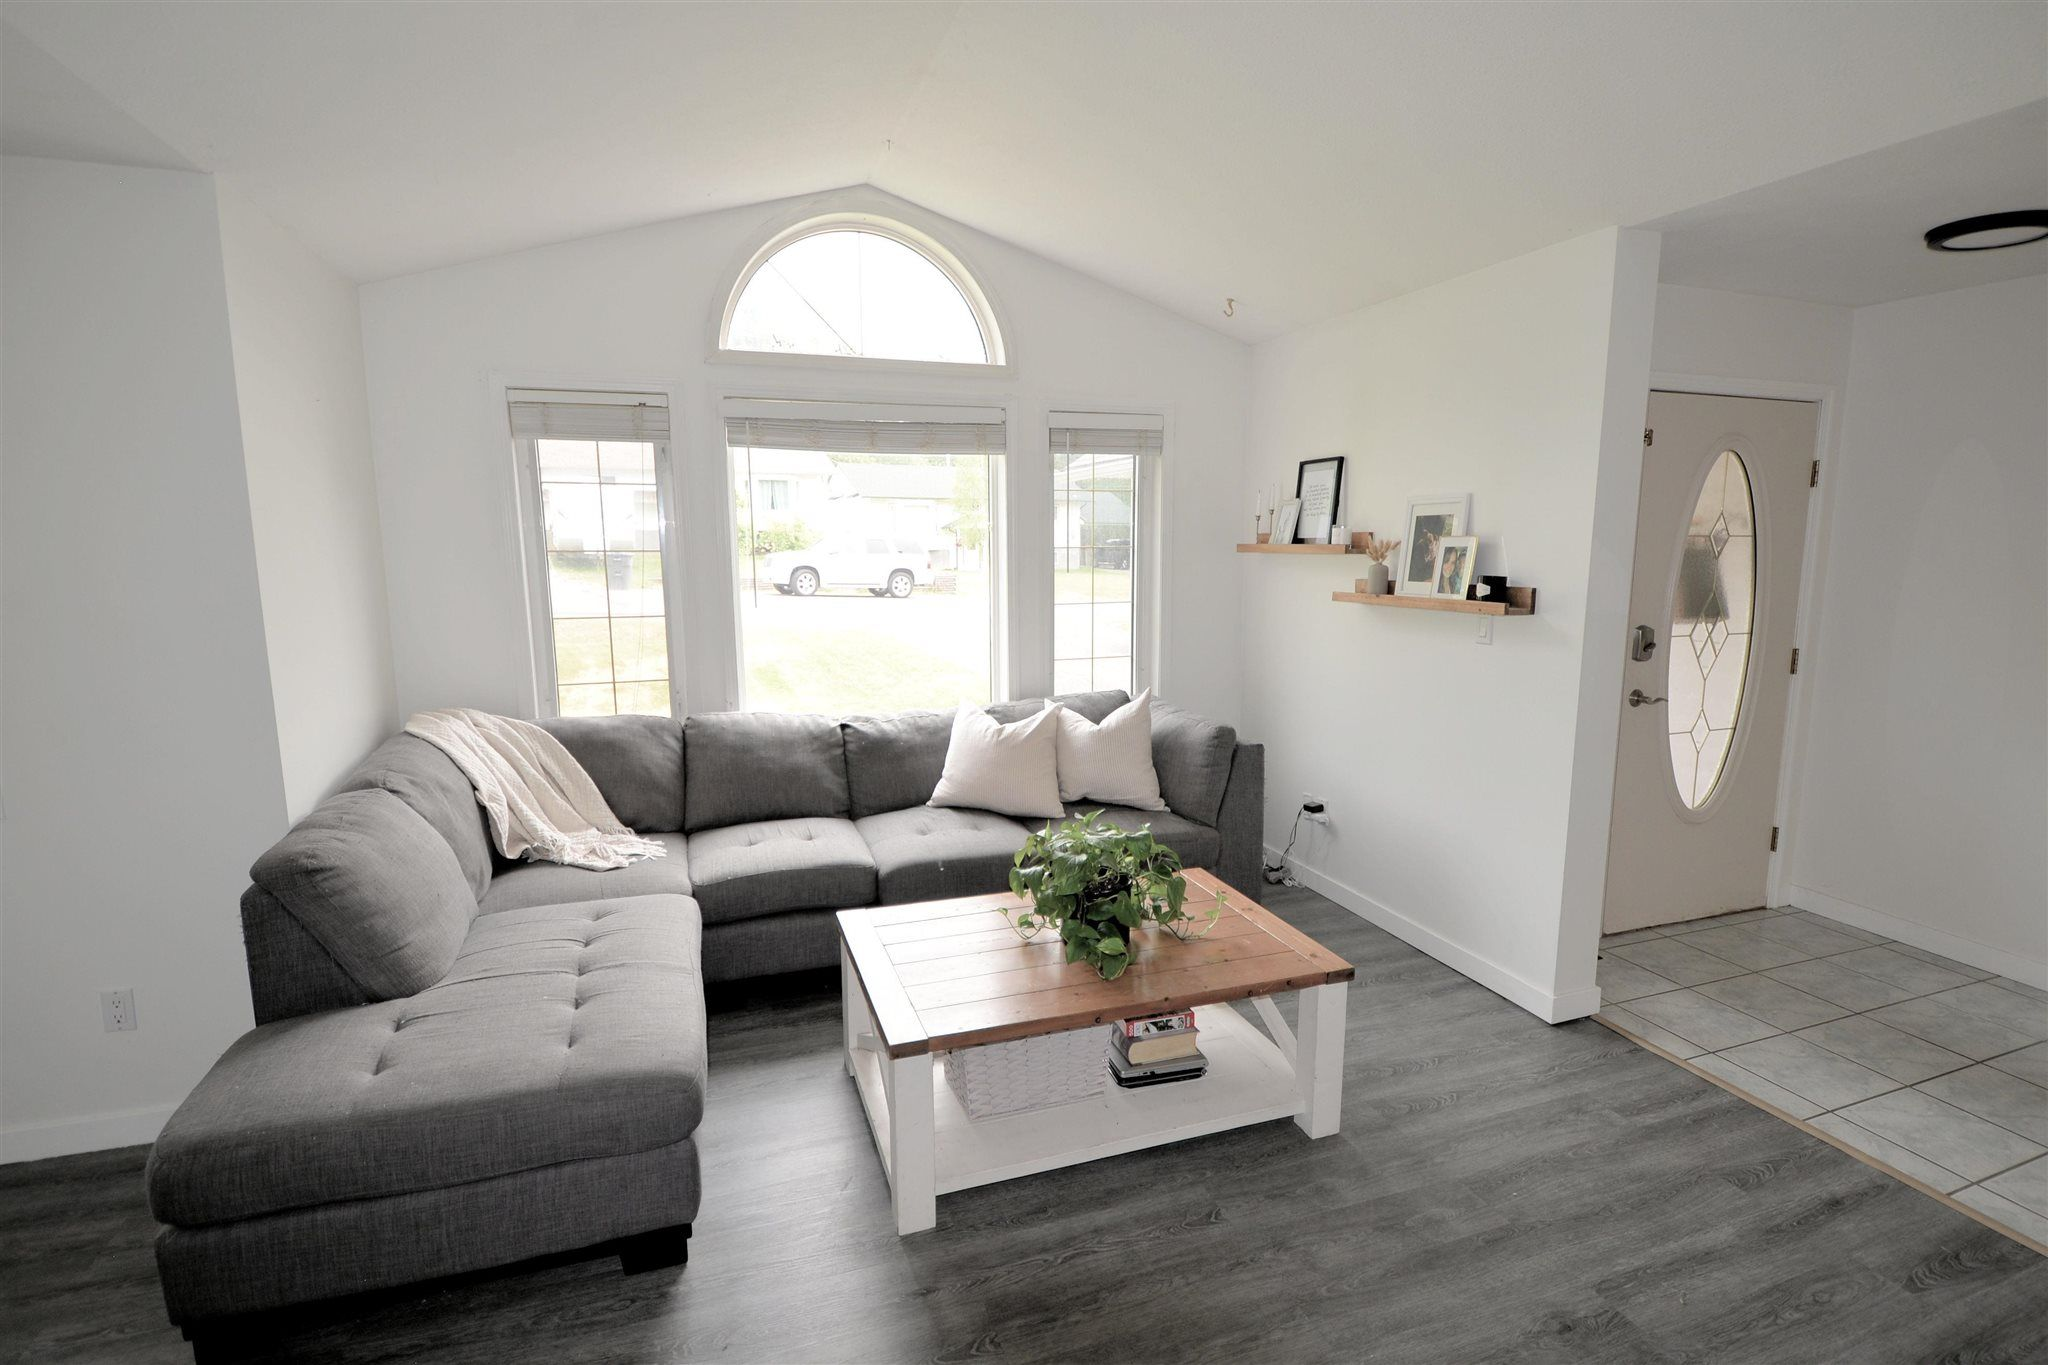 Photo 5: Photos: 2045 CROFT Road in Prince George: Ingala House for sale (PG City North (Zone 73))  : MLS®# R2600190